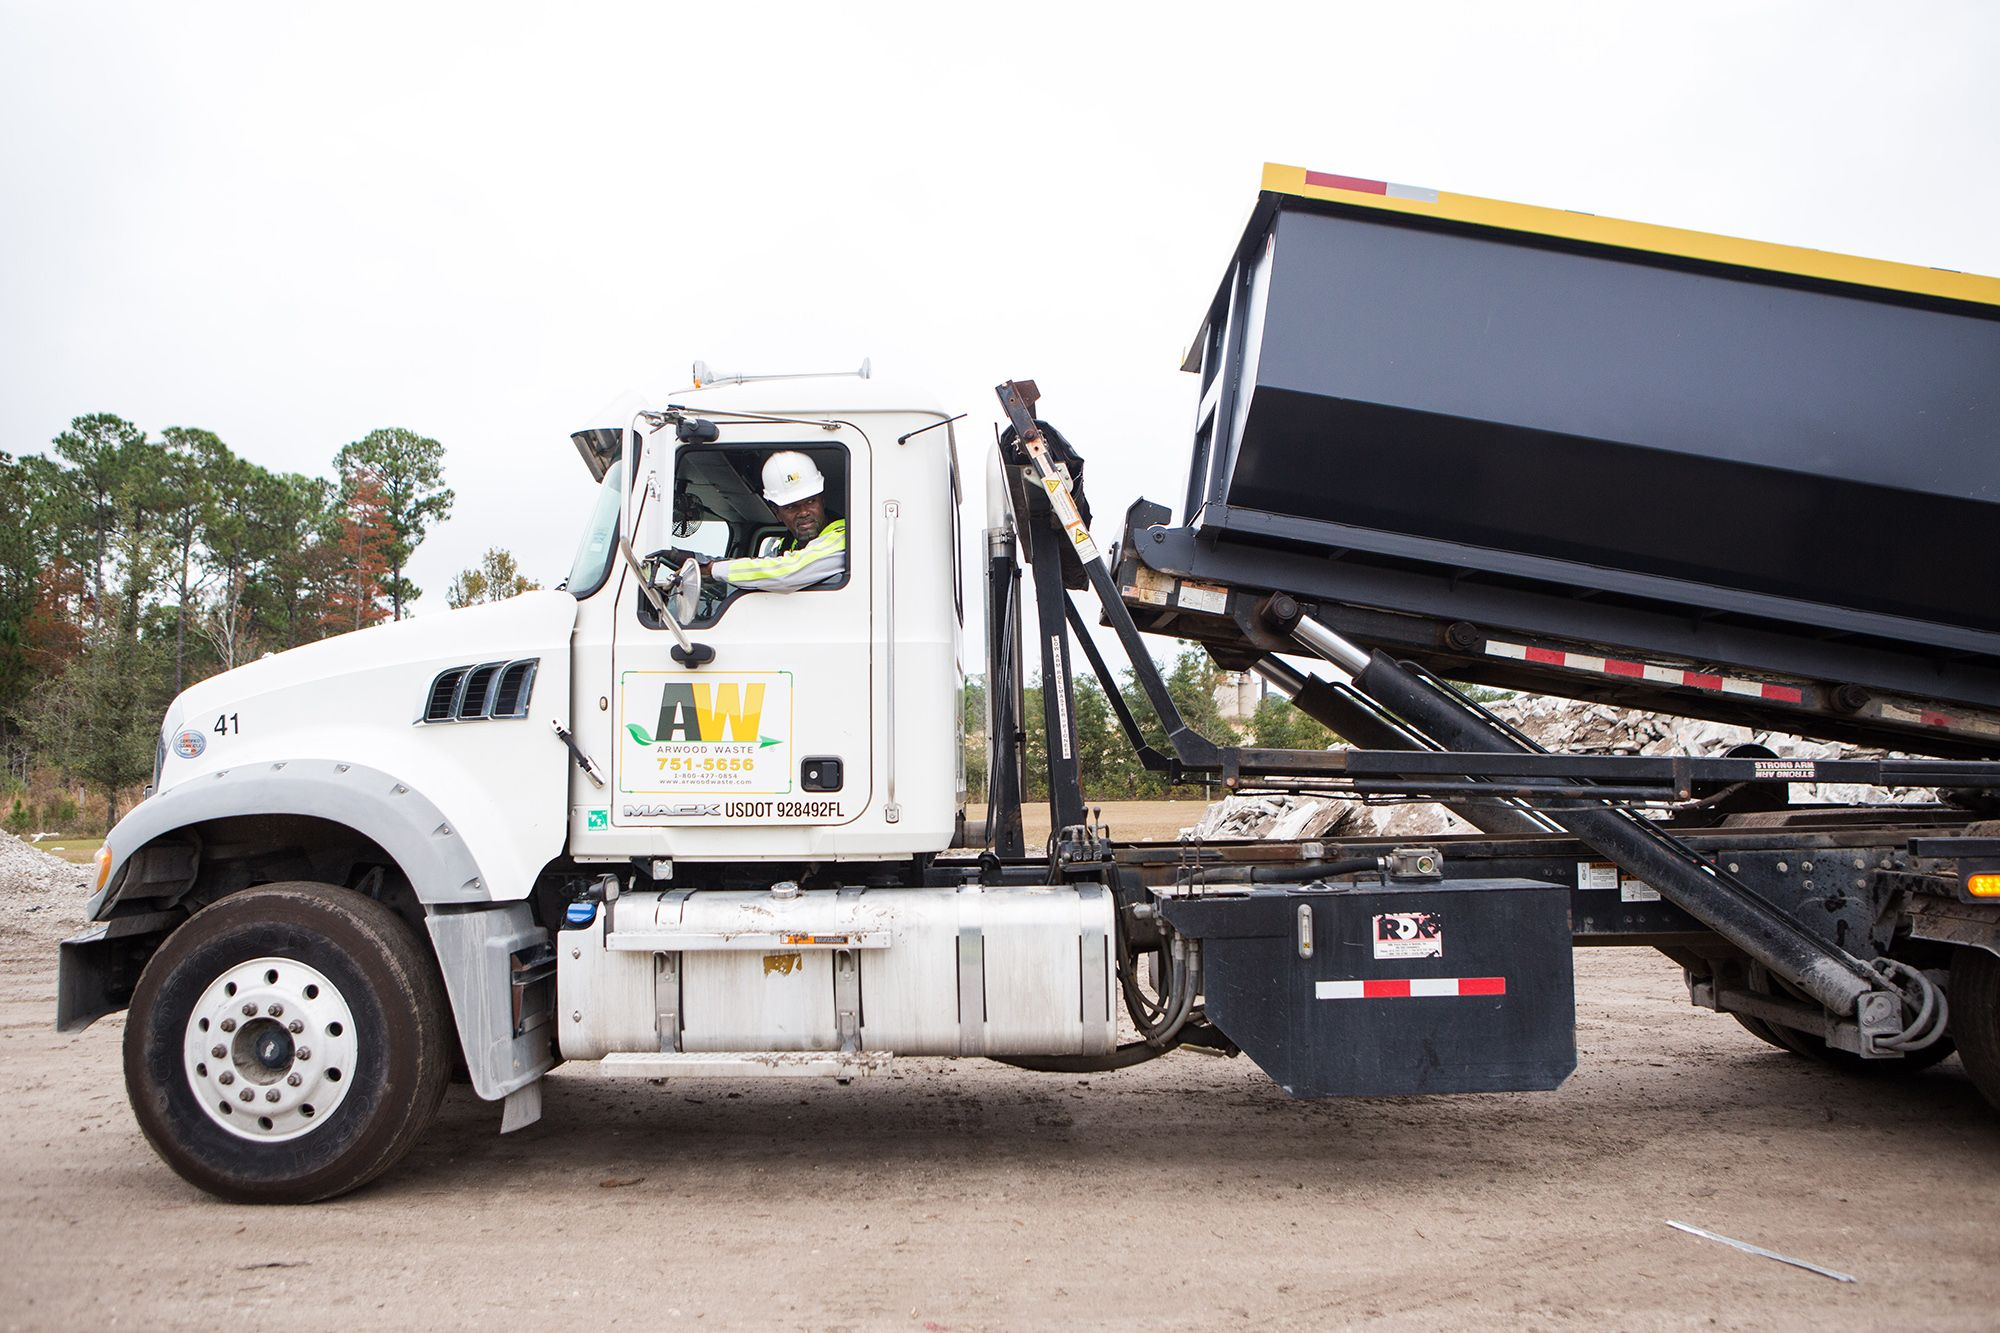 Roll-Off Containers/Dumpsters for Rent - Arwood Waste has the ...